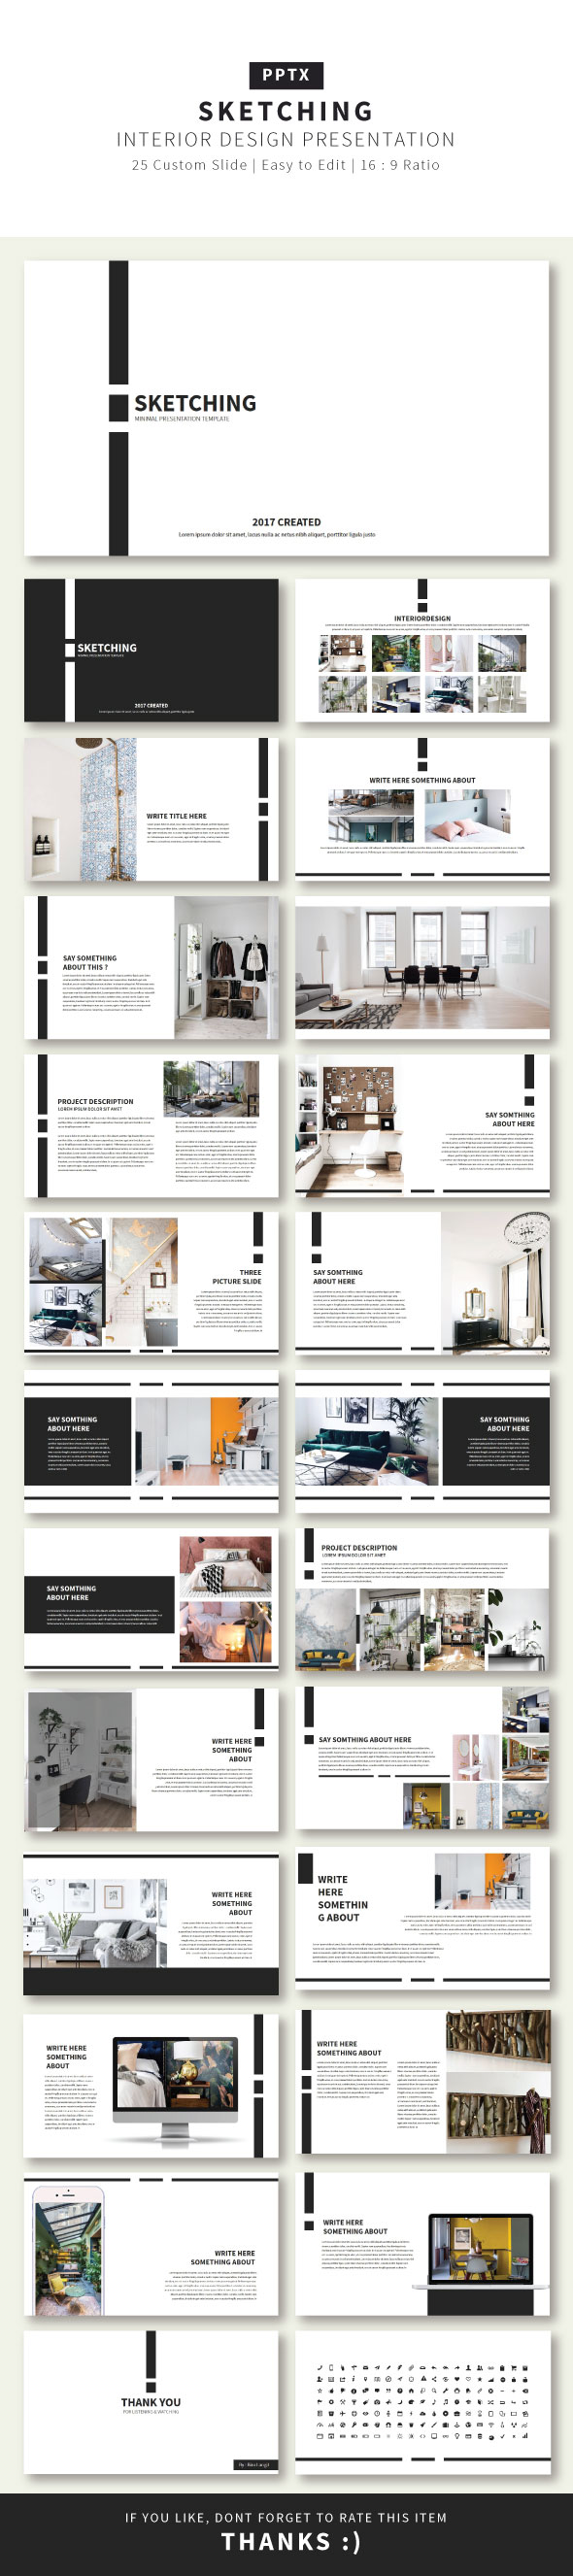 Sketching Presentation Creative Template - Business PowerPoint Templates